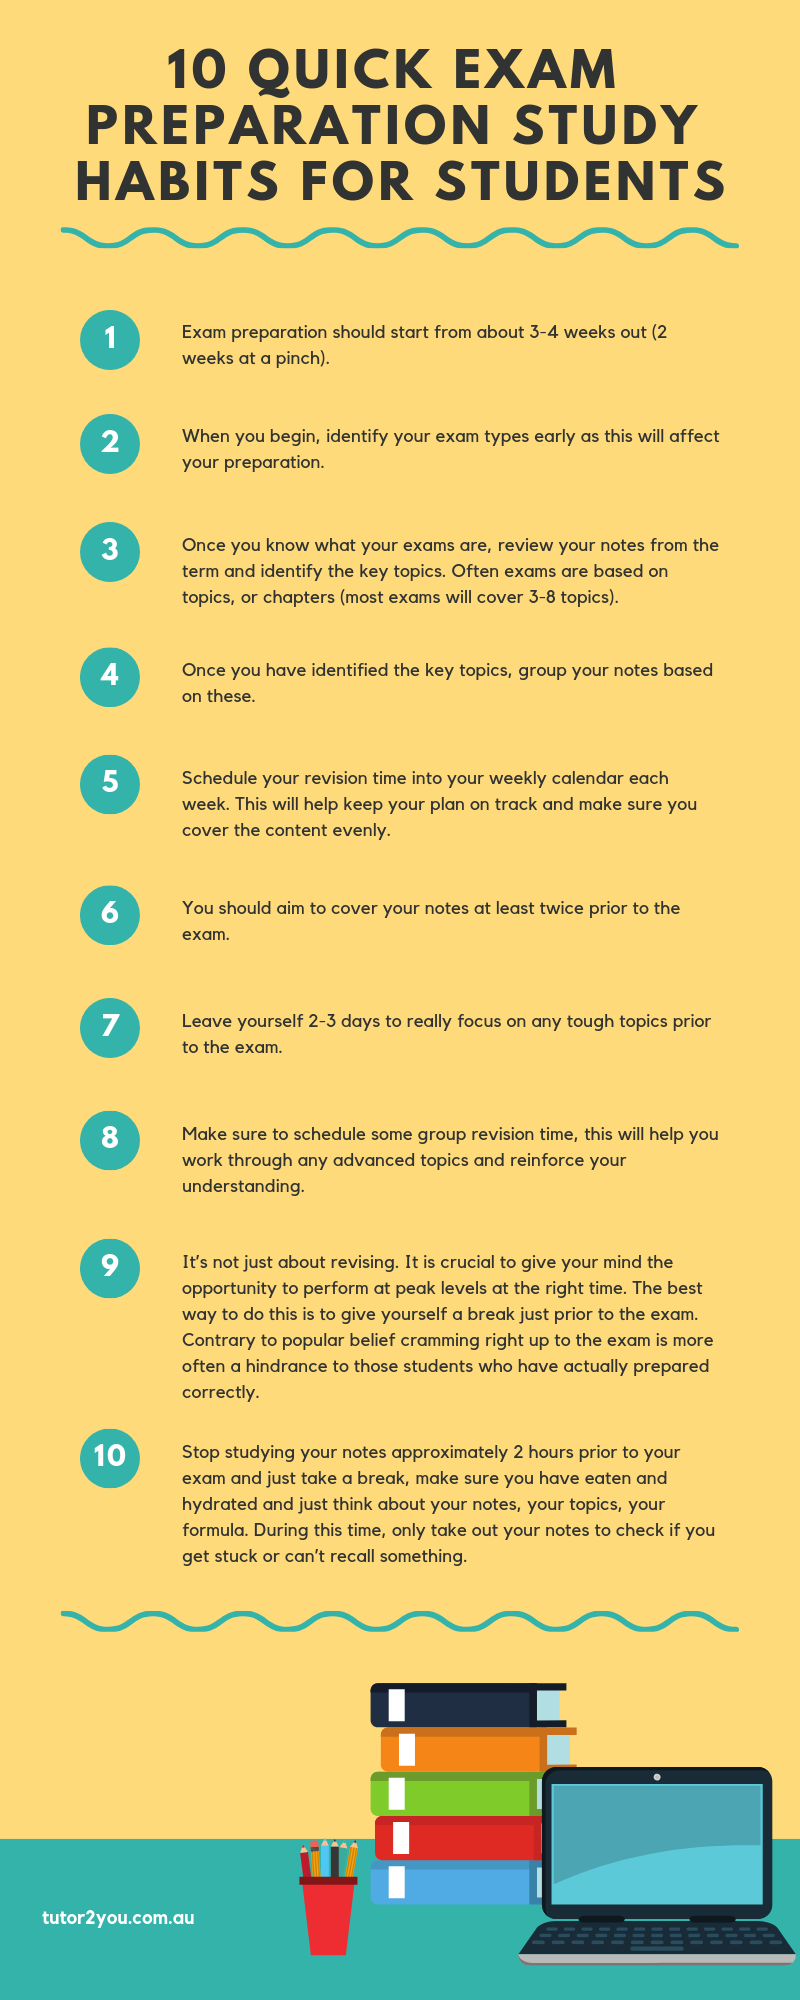 10 exam preparation study tips for students - infographic | Tutor2you